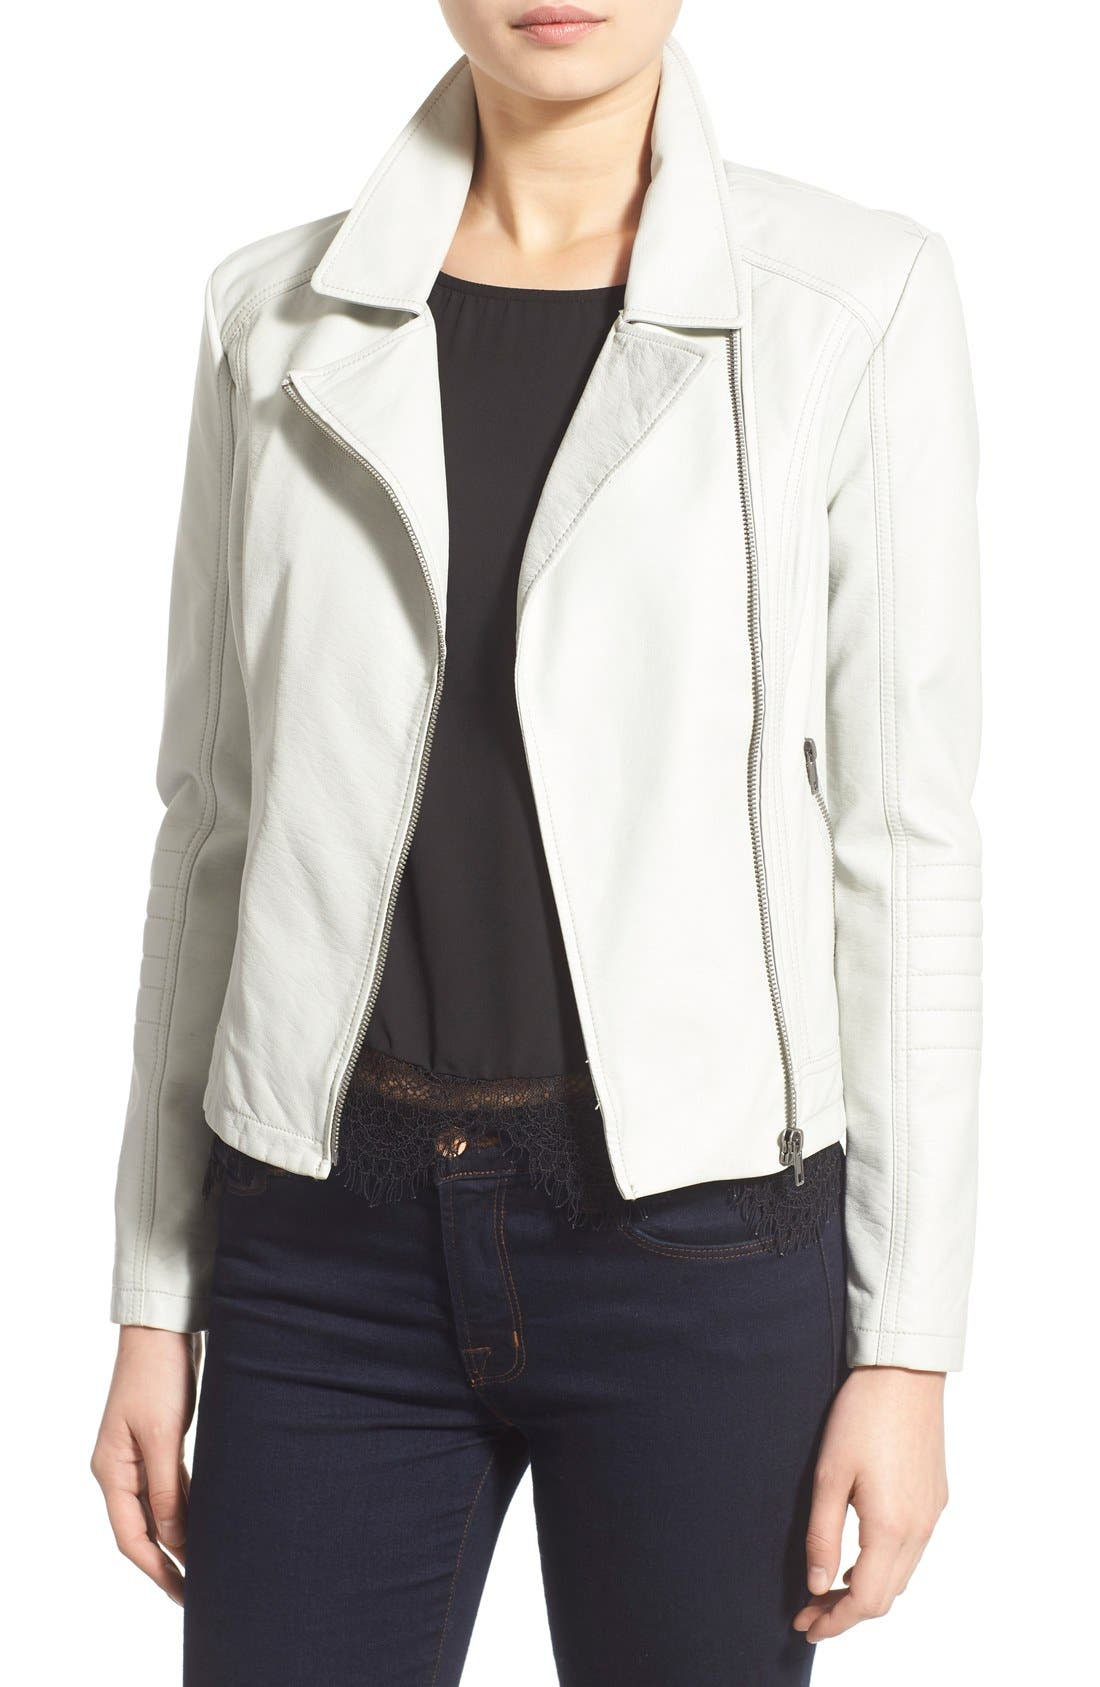 Alternate Image 1 Selected - cupcakes and cashmere 'Sid' Faux Leather Moto Jacket (Nordstrom Exclusive)